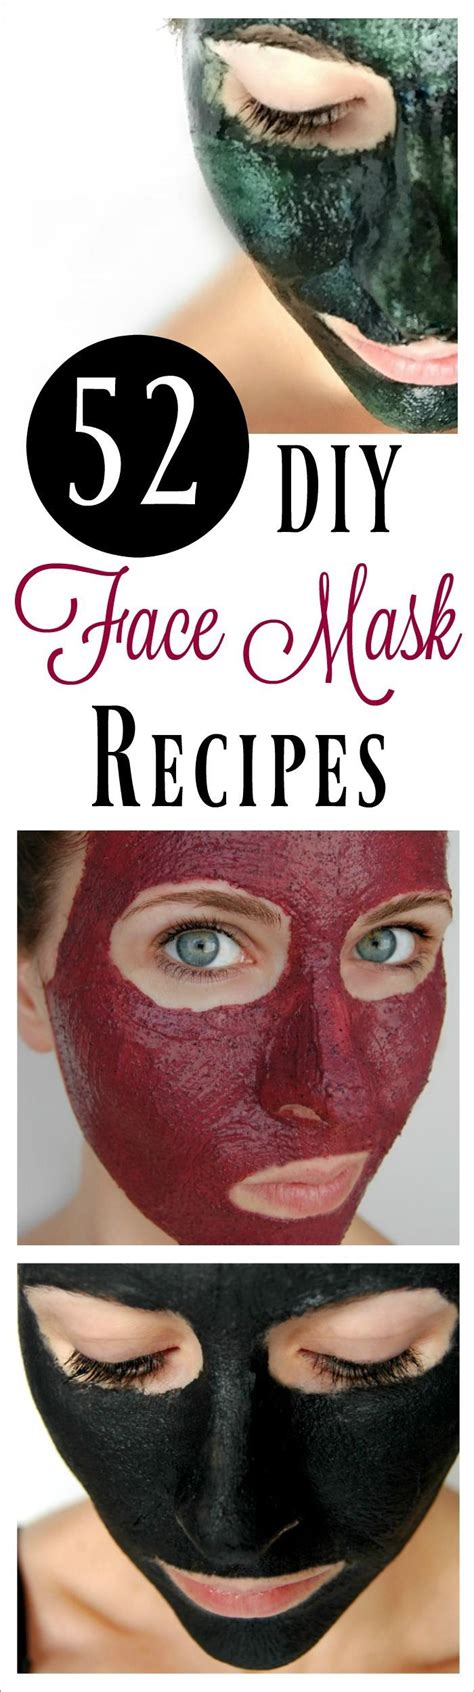 easy diy masks recipes diy skin care recipes diy masks are incredibly easy to make and you likely already